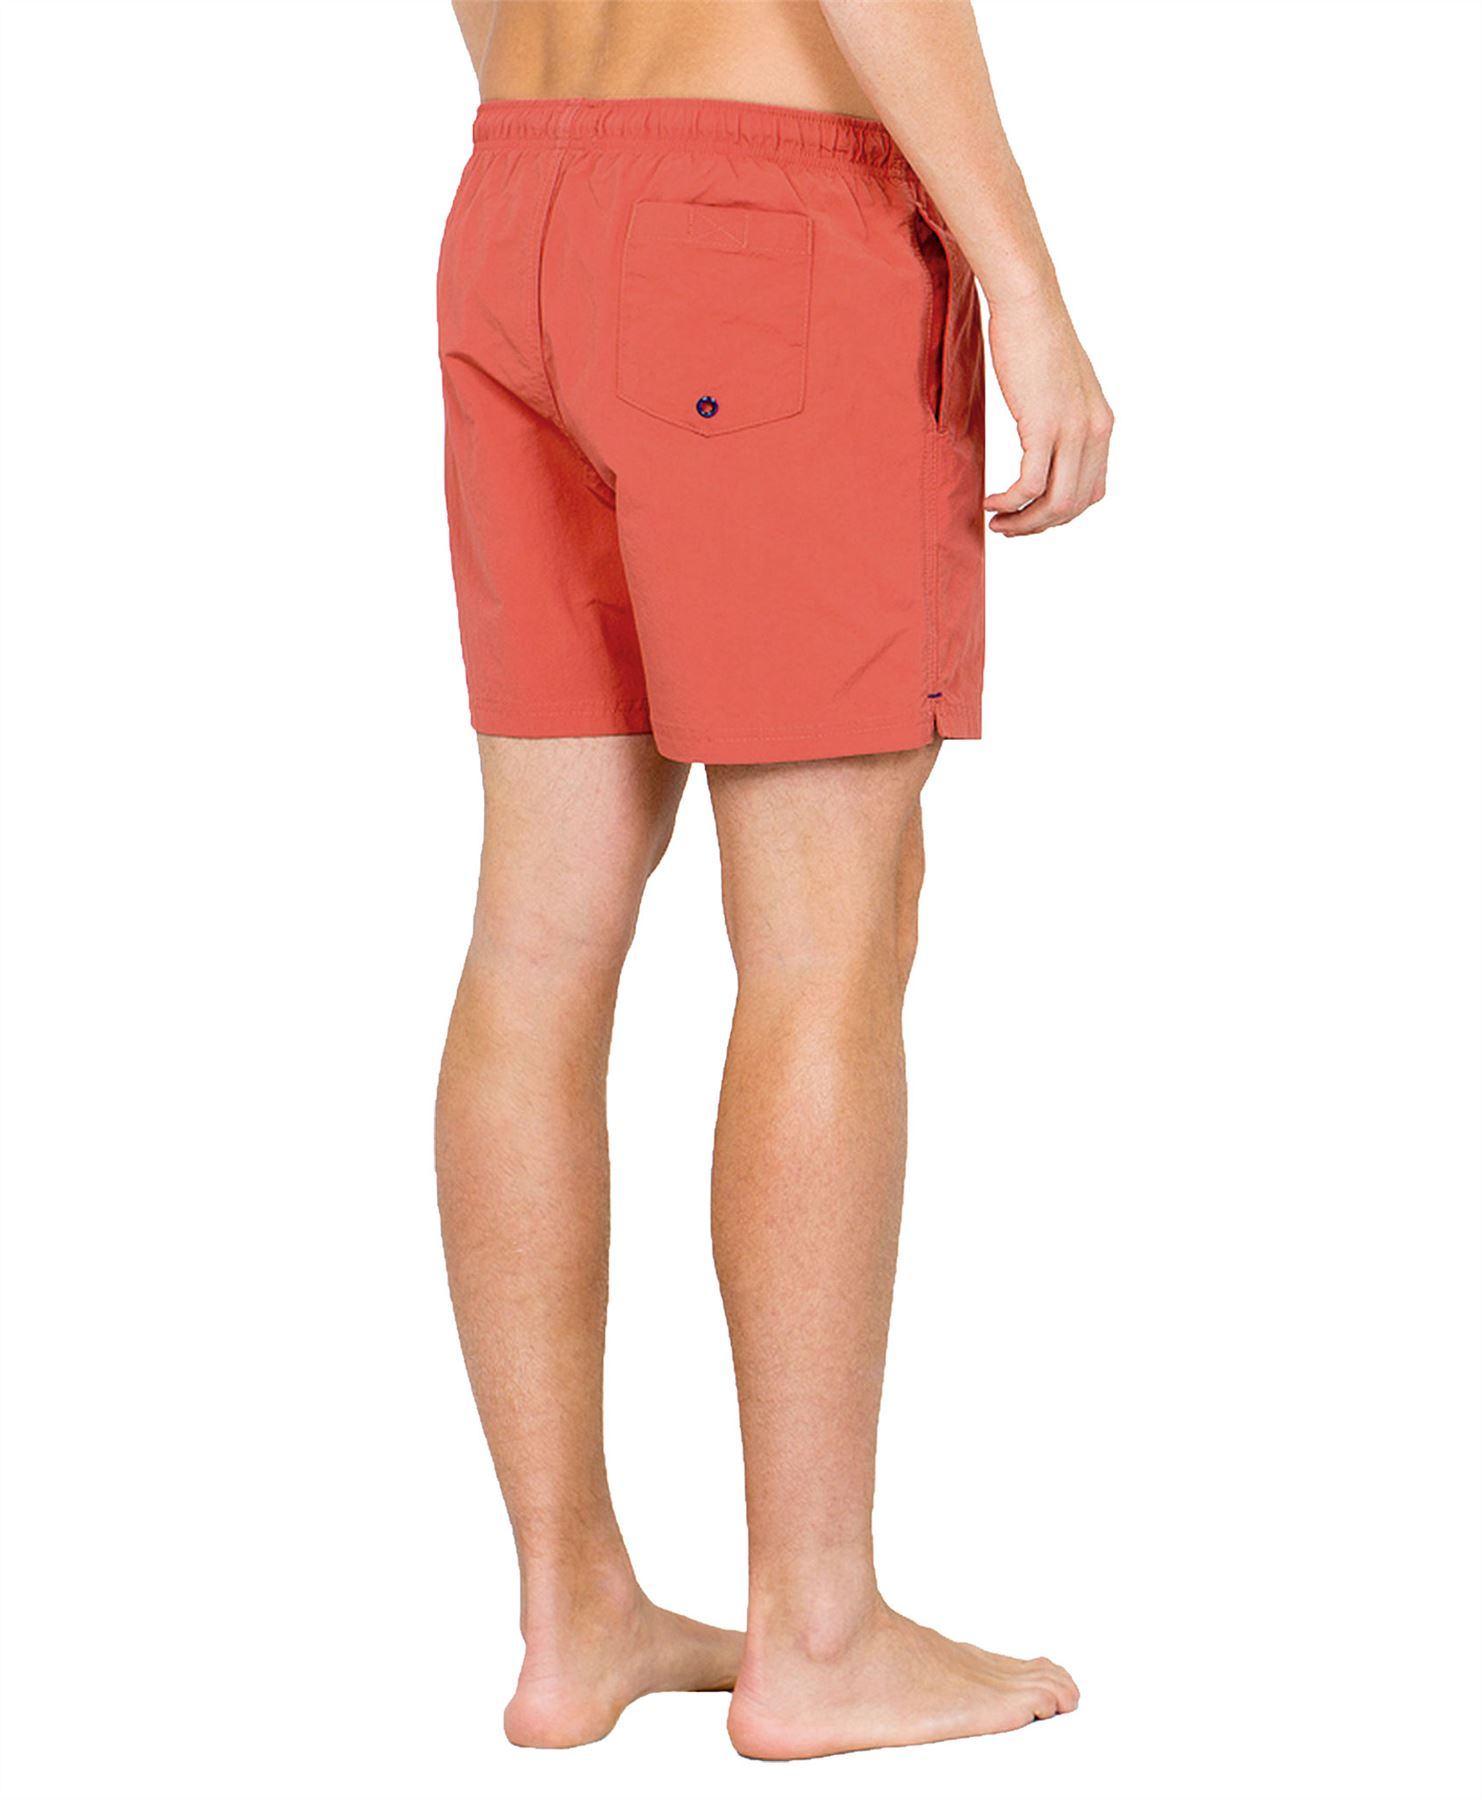 Shipping Discount Authentic Mens Shorts Springfield Cheap Affordable Cheap Sale Huge Surprise OcOZeBj